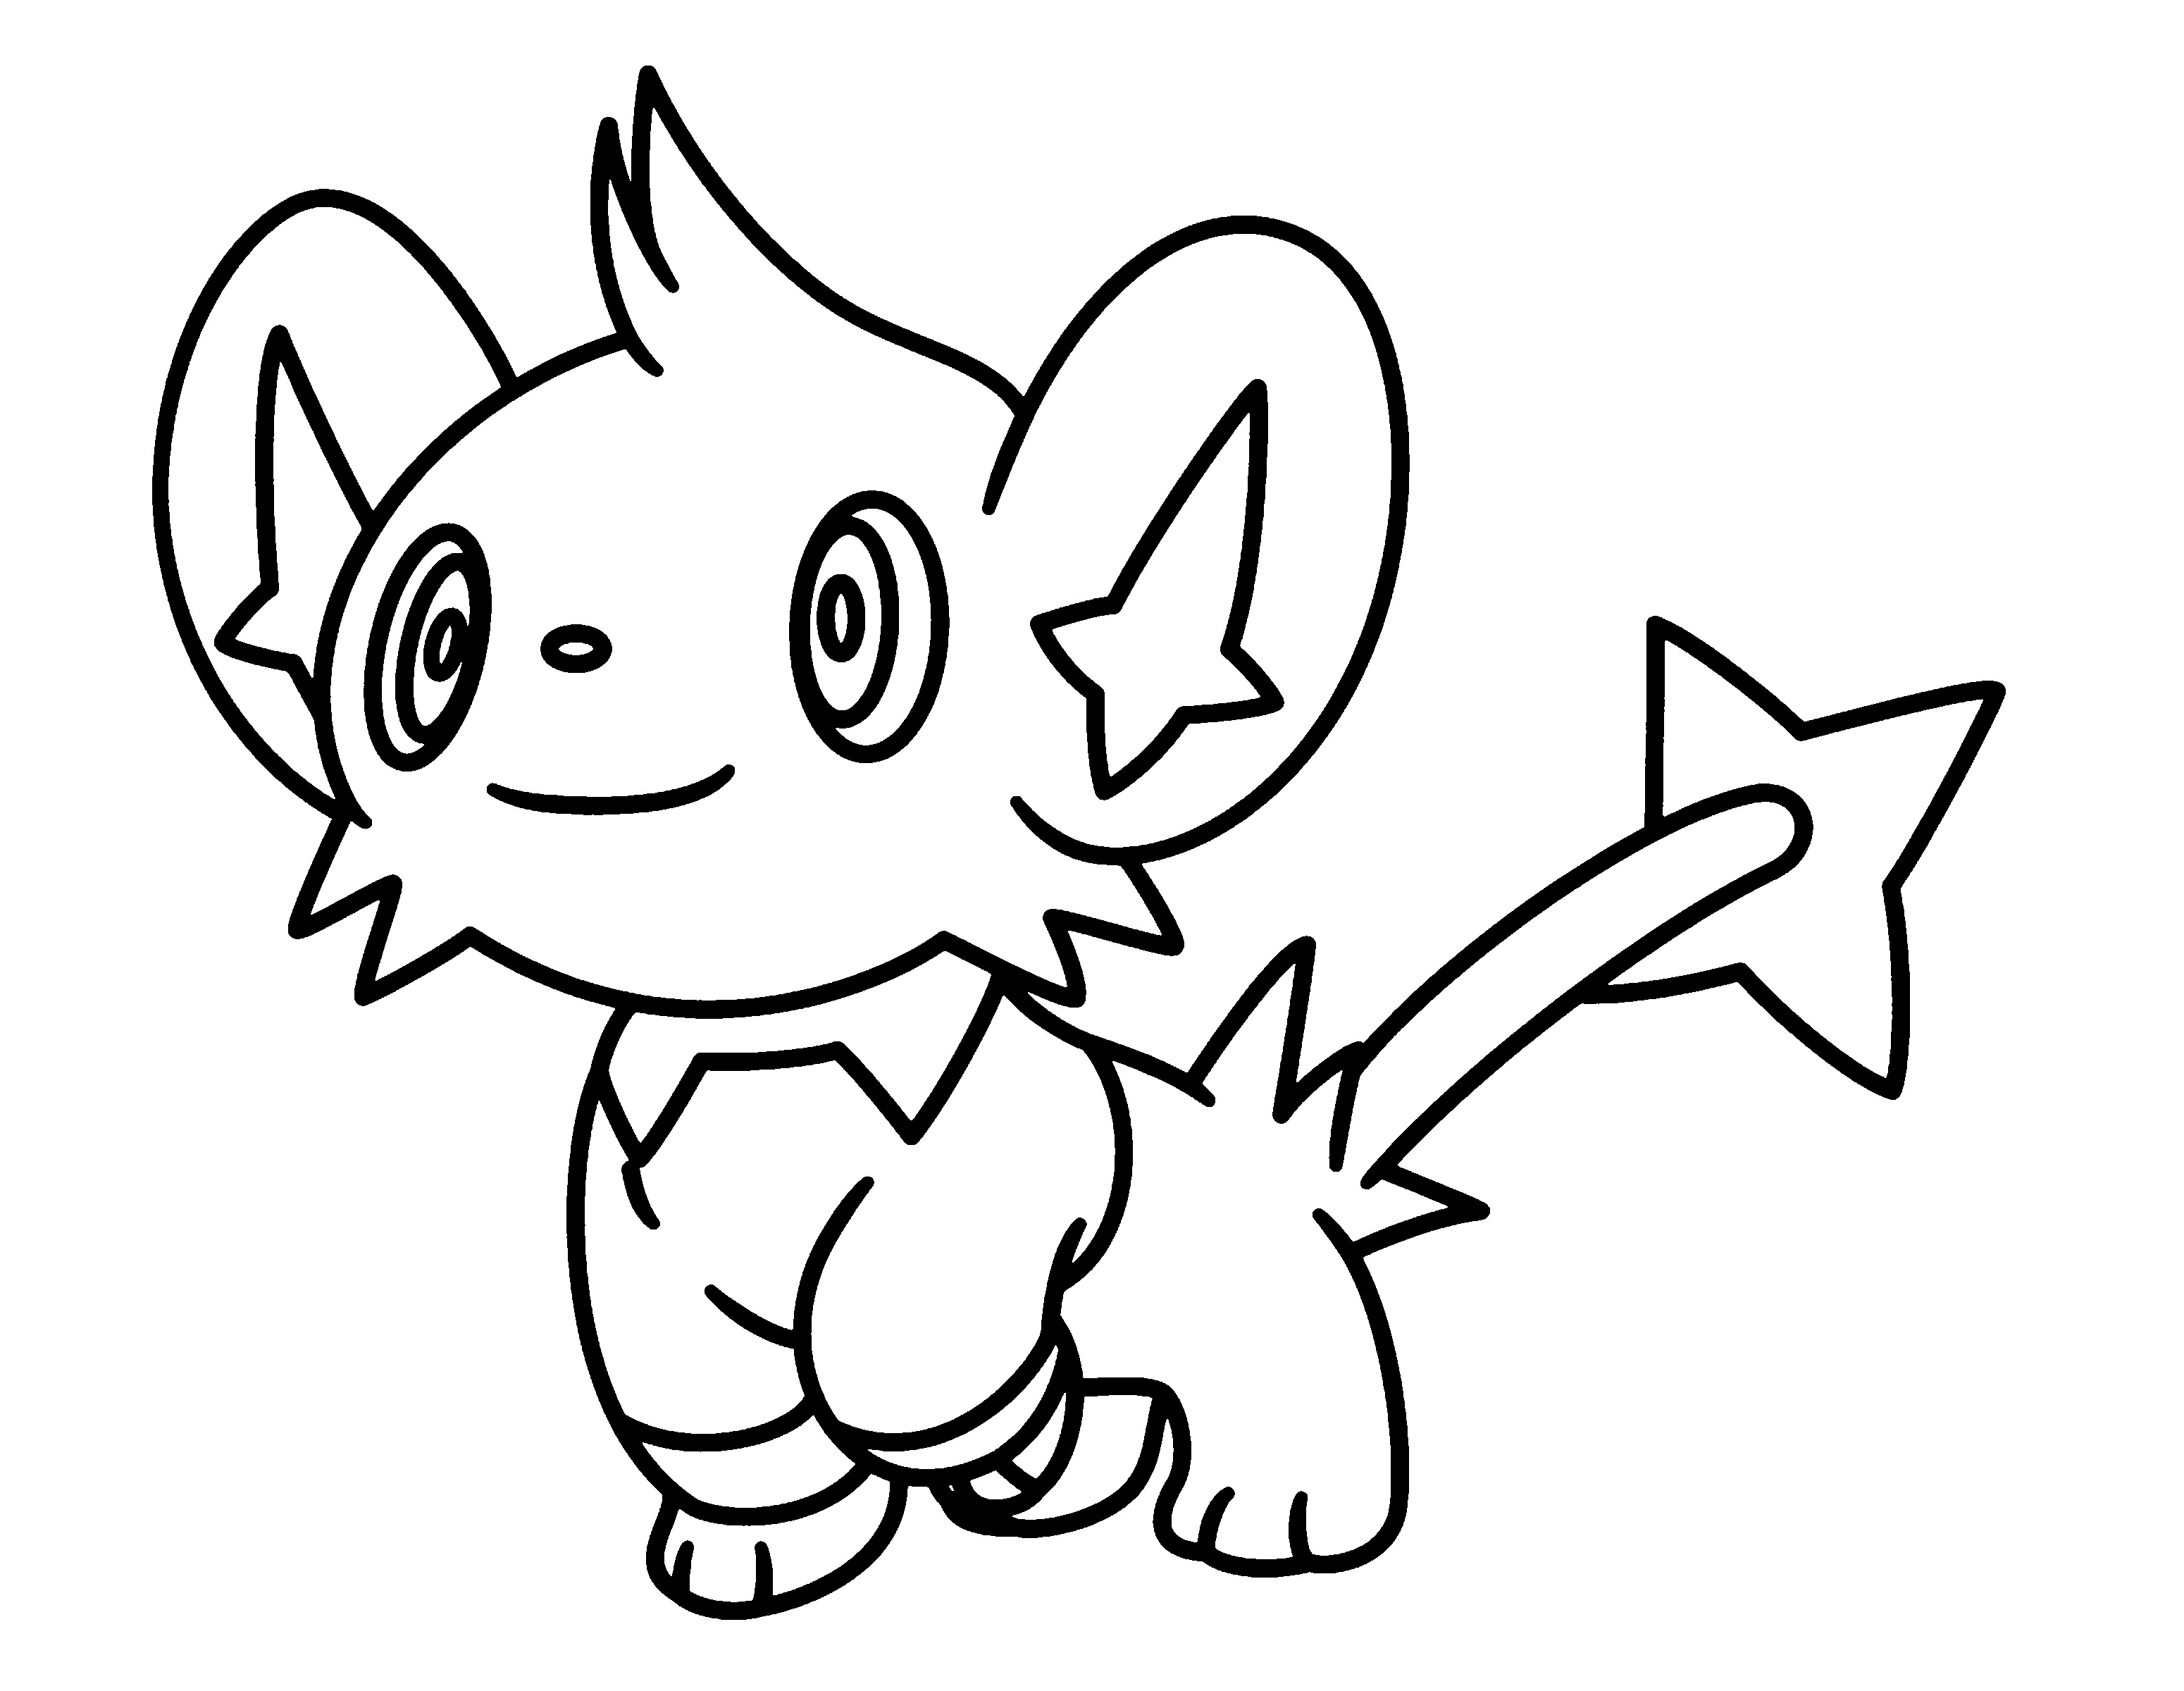 Coloring pages for pokemon - Pokemon Coloring Sheets